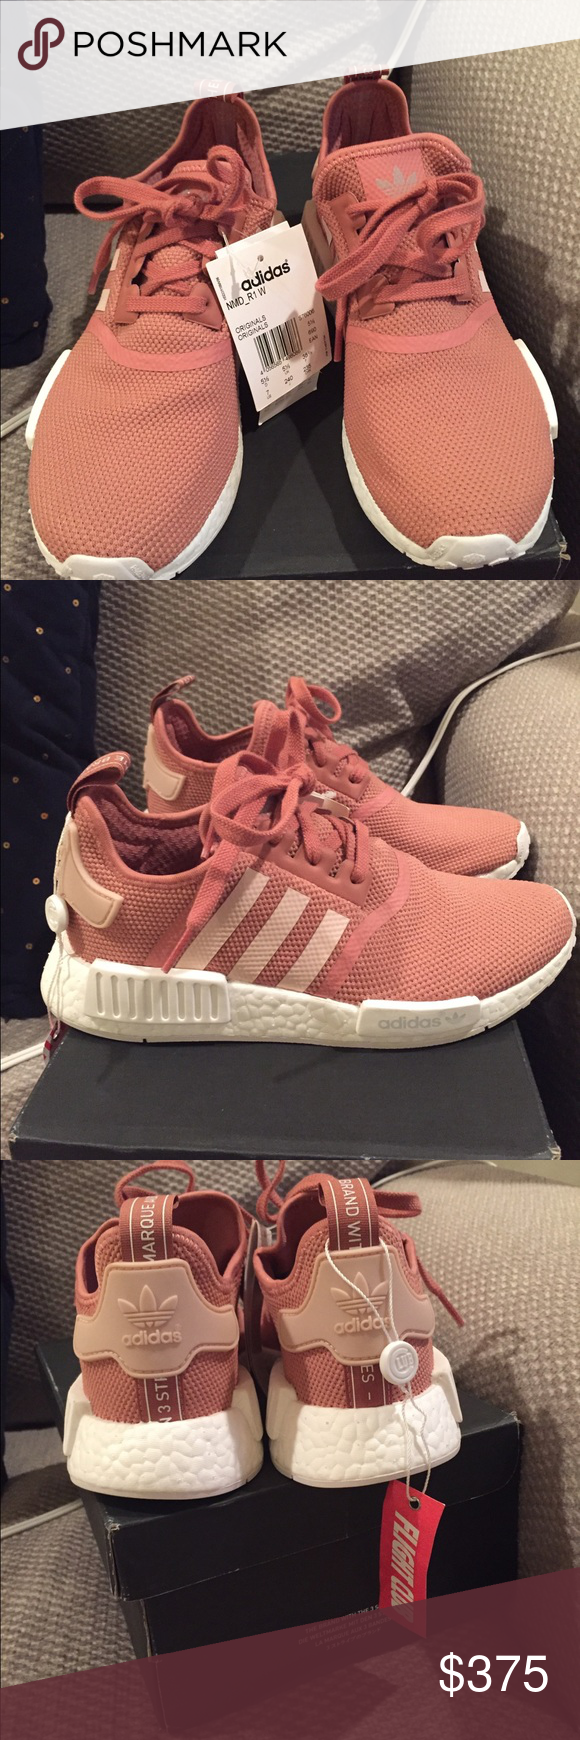 adidas nmd r1 fit adidas nmd pink white